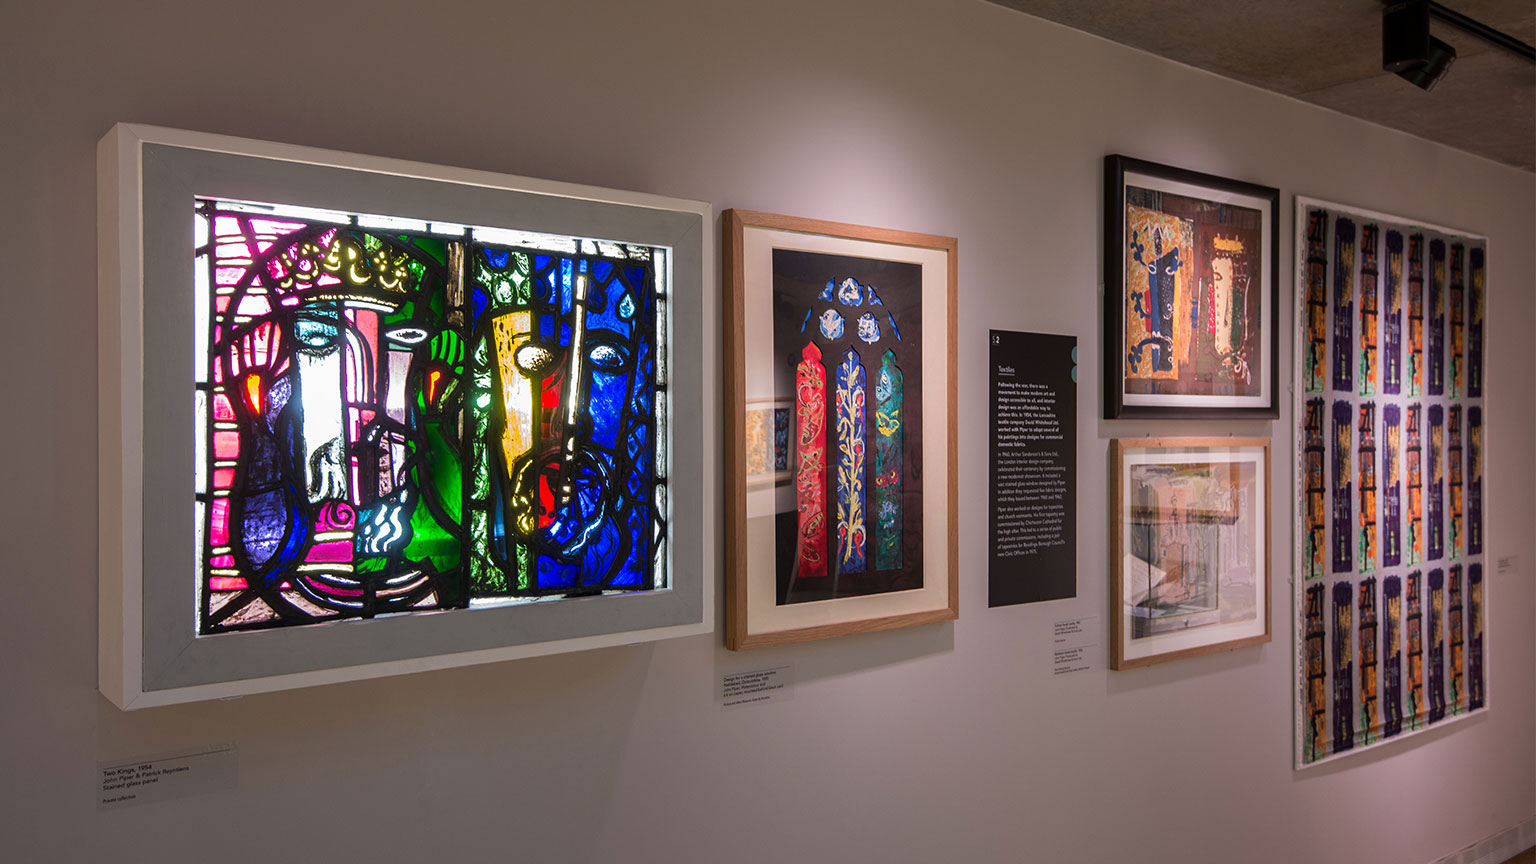 A selection of stained glass and textiles by John Piper